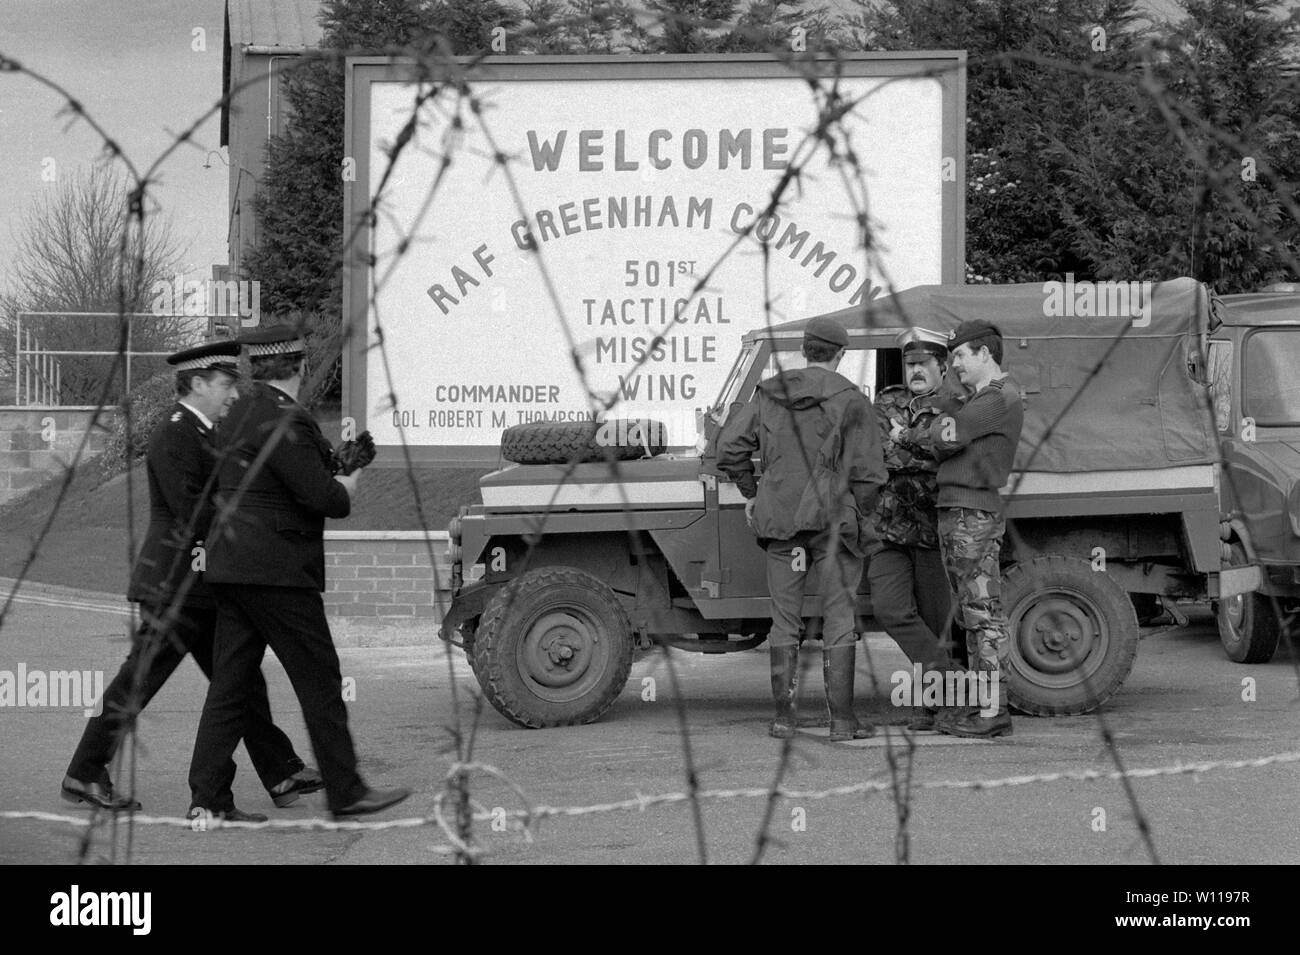 Greenham Common RAF base 1983 British Army military police protect RAF base, during the CND Womens Peace Camp blockade. 1980s UK HOMER SYKES Stock Photo